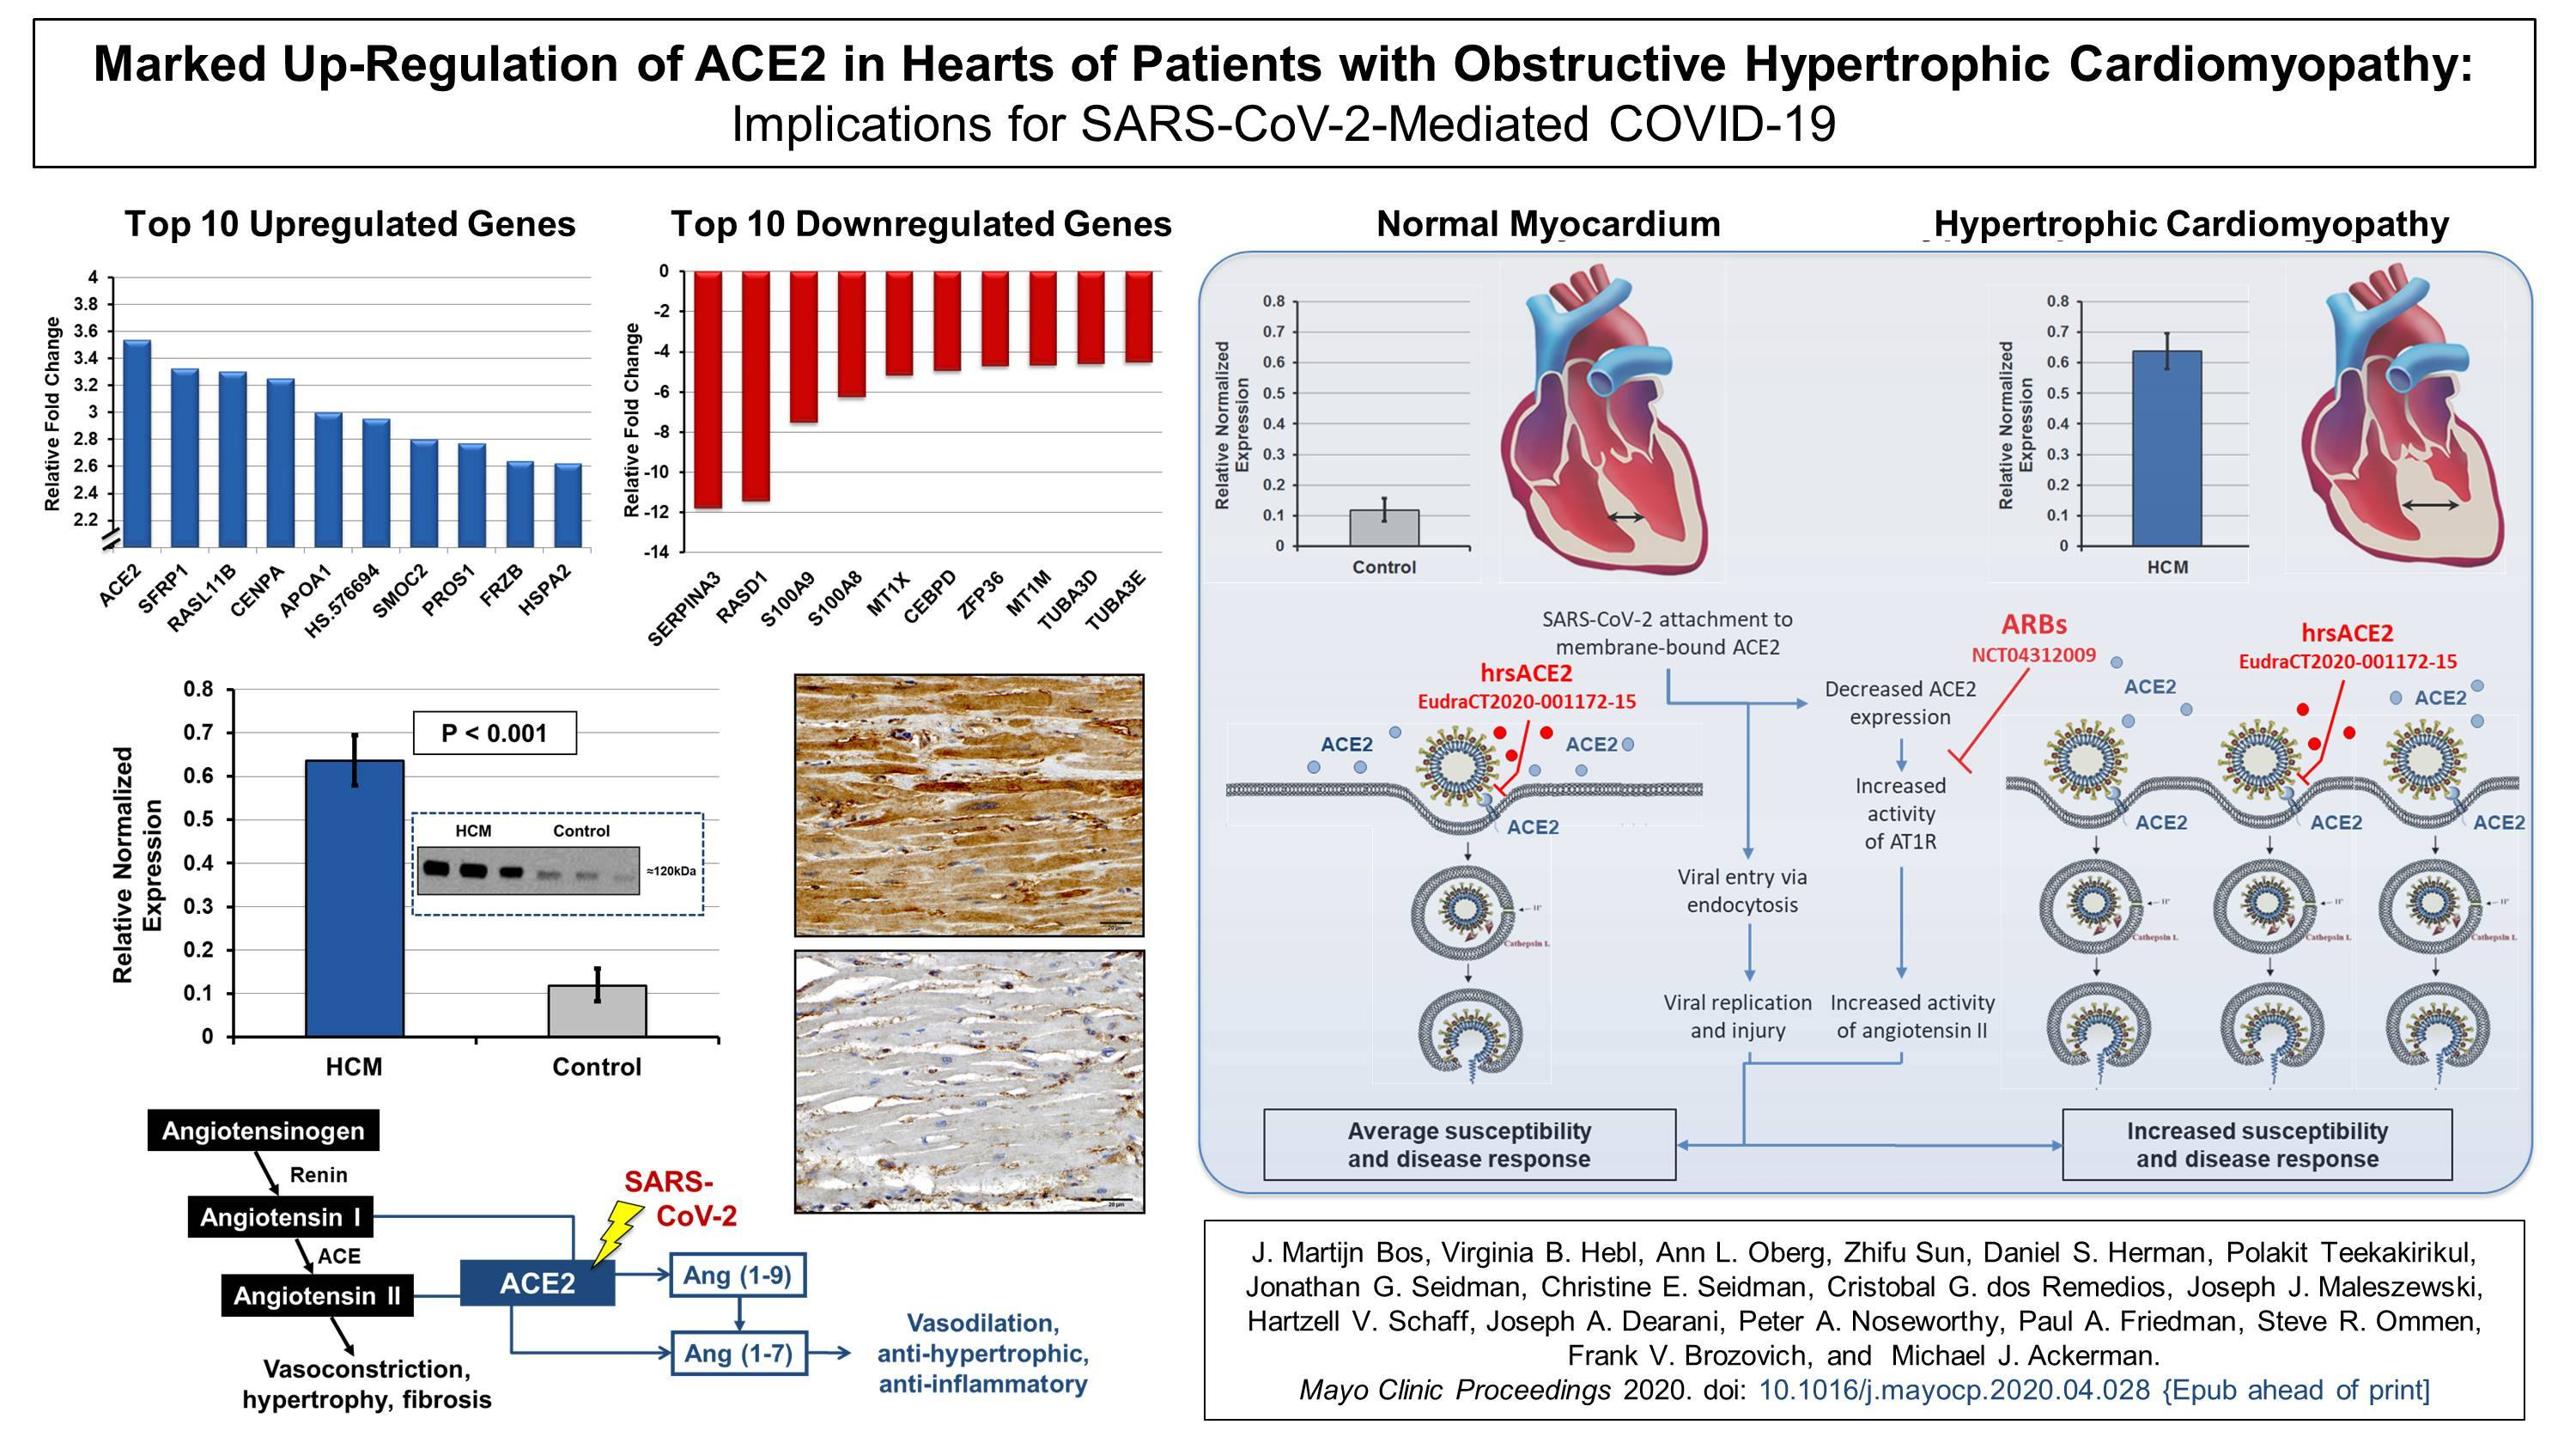 New Scientific Paper Published on HCM and COVID-19